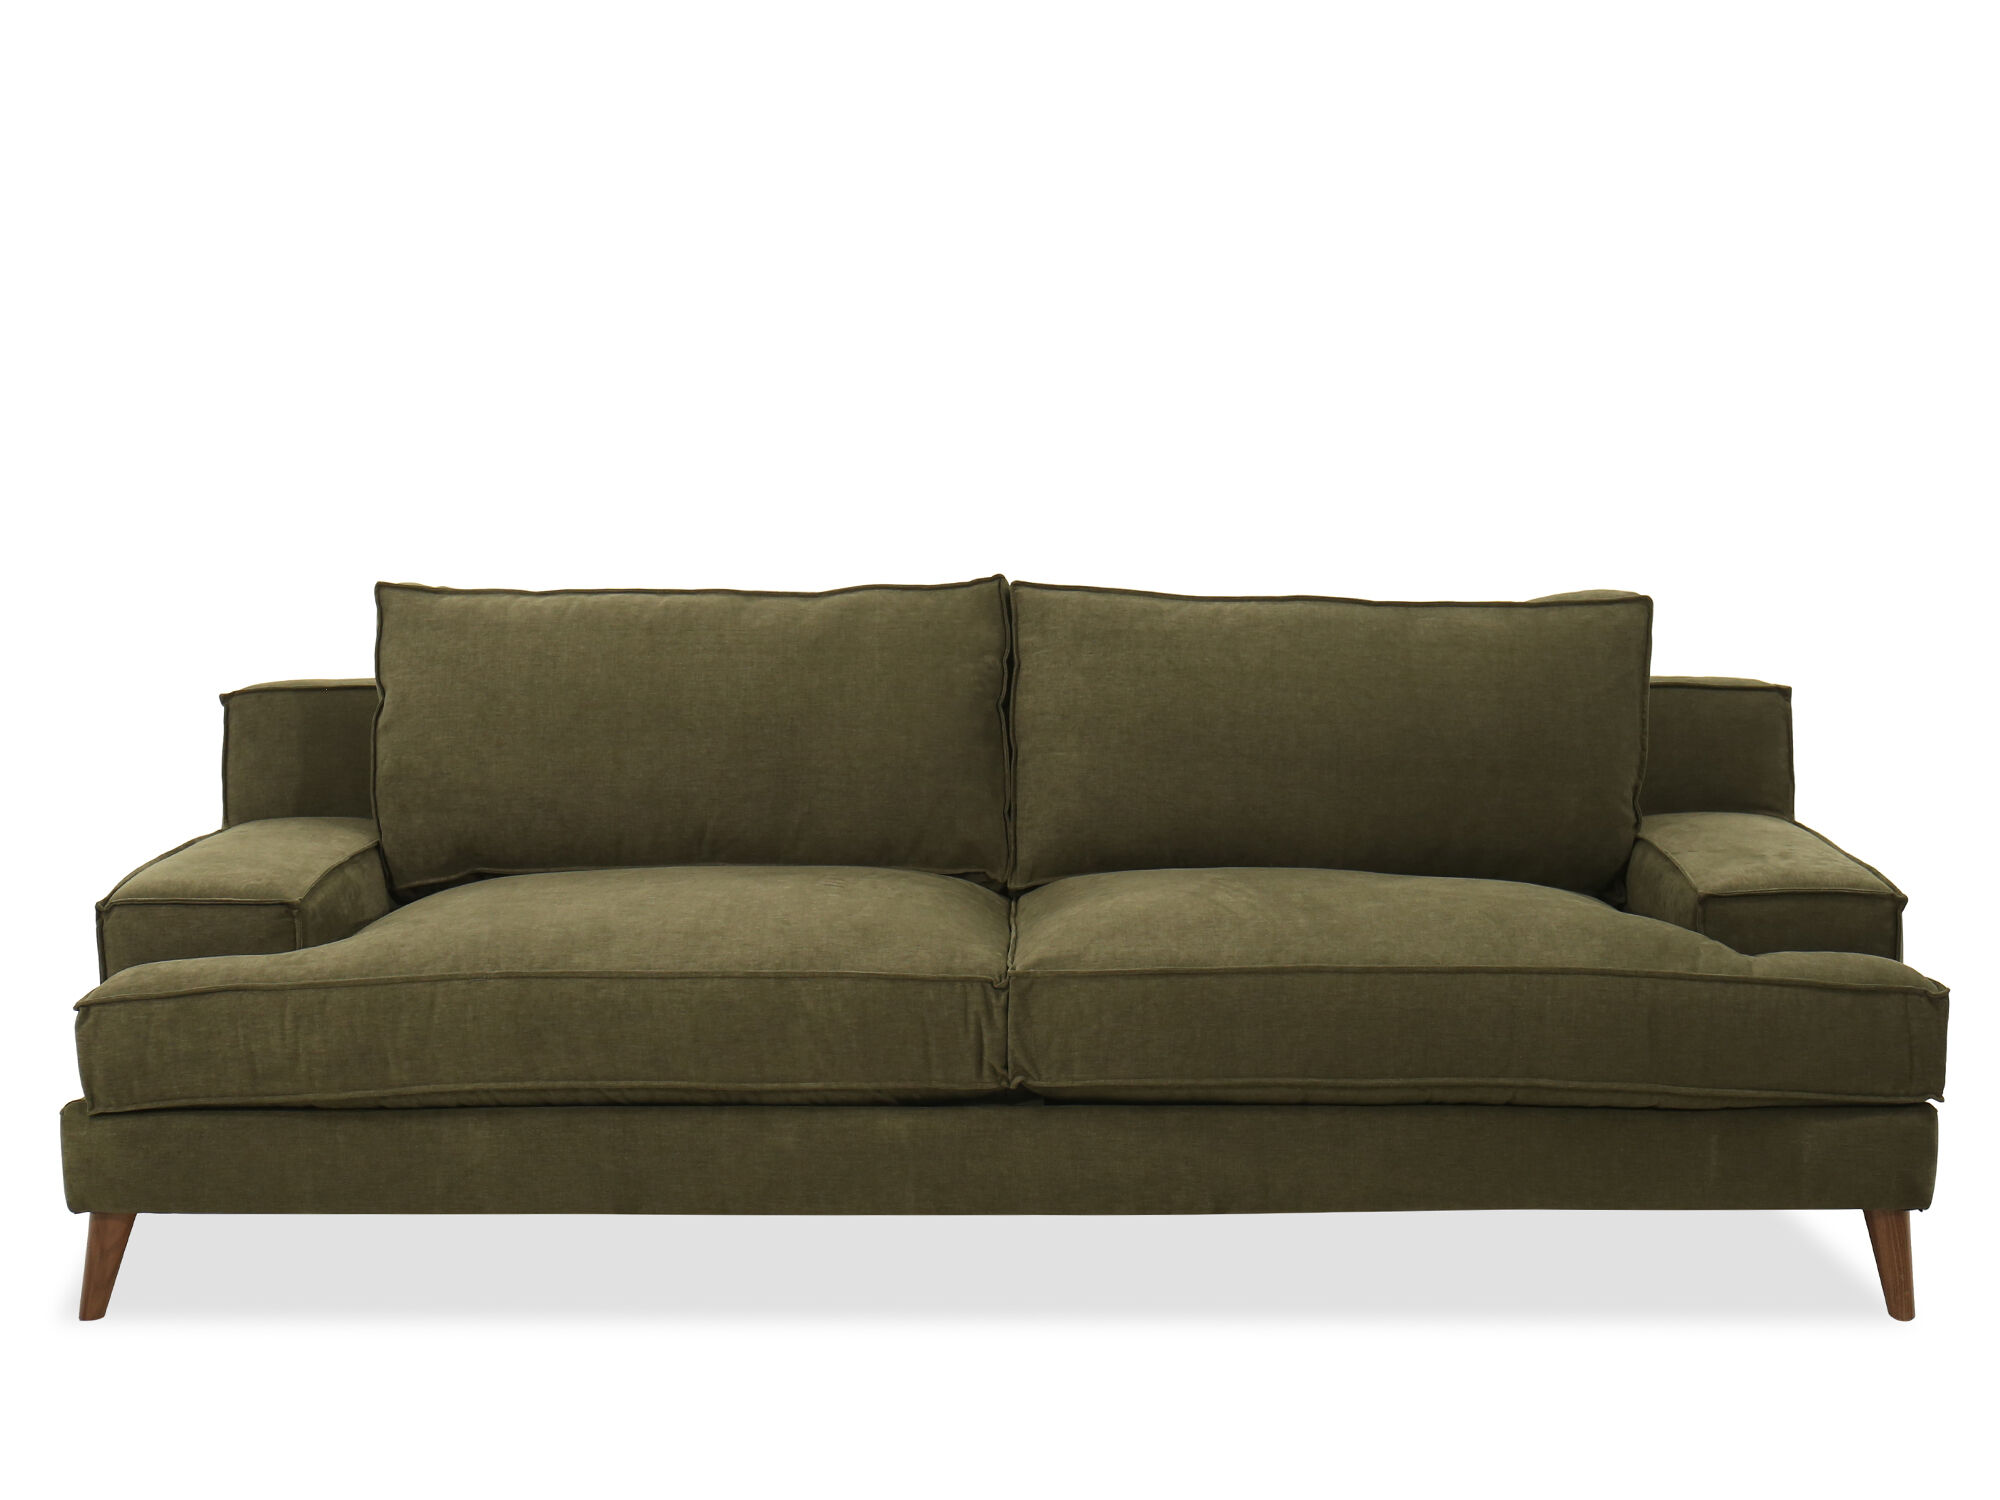 Modern Low Profile Sofa In Forest Green